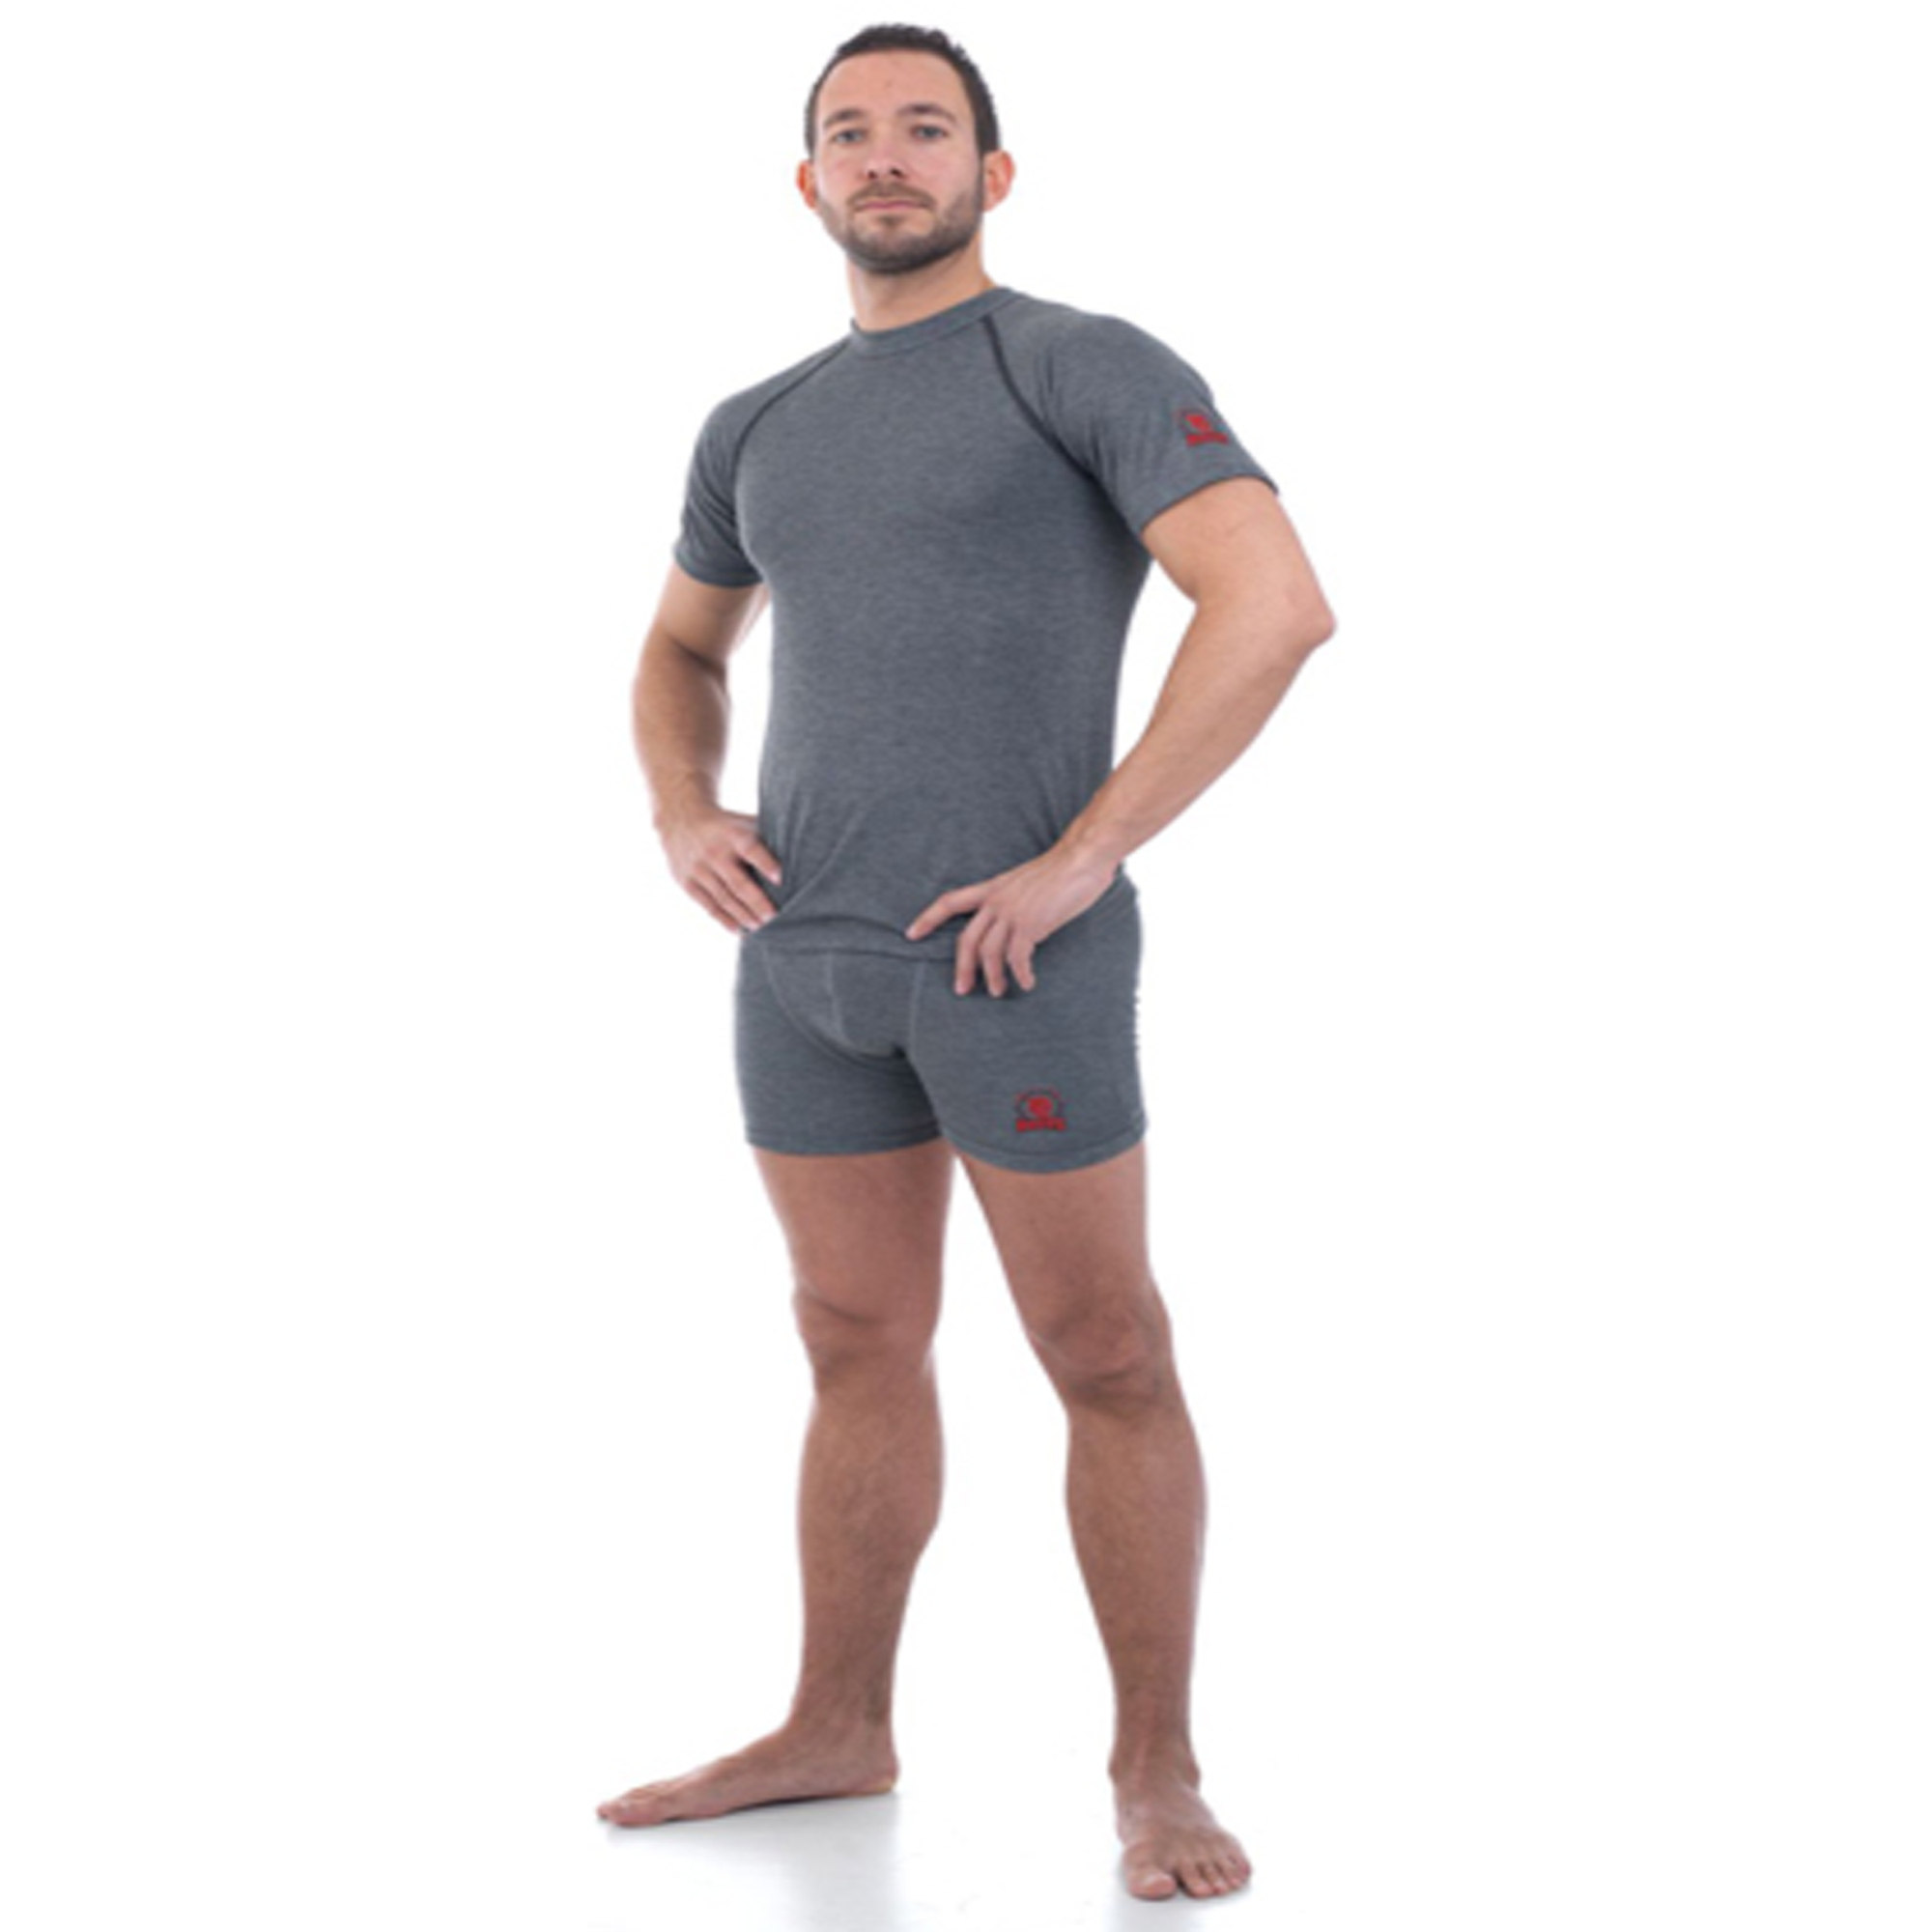 ROOTS ARC RATED MEN'S UNDERWEAR SHIRT SHORT SLEEVE AND BOXER - 4.8 CAL/CM²